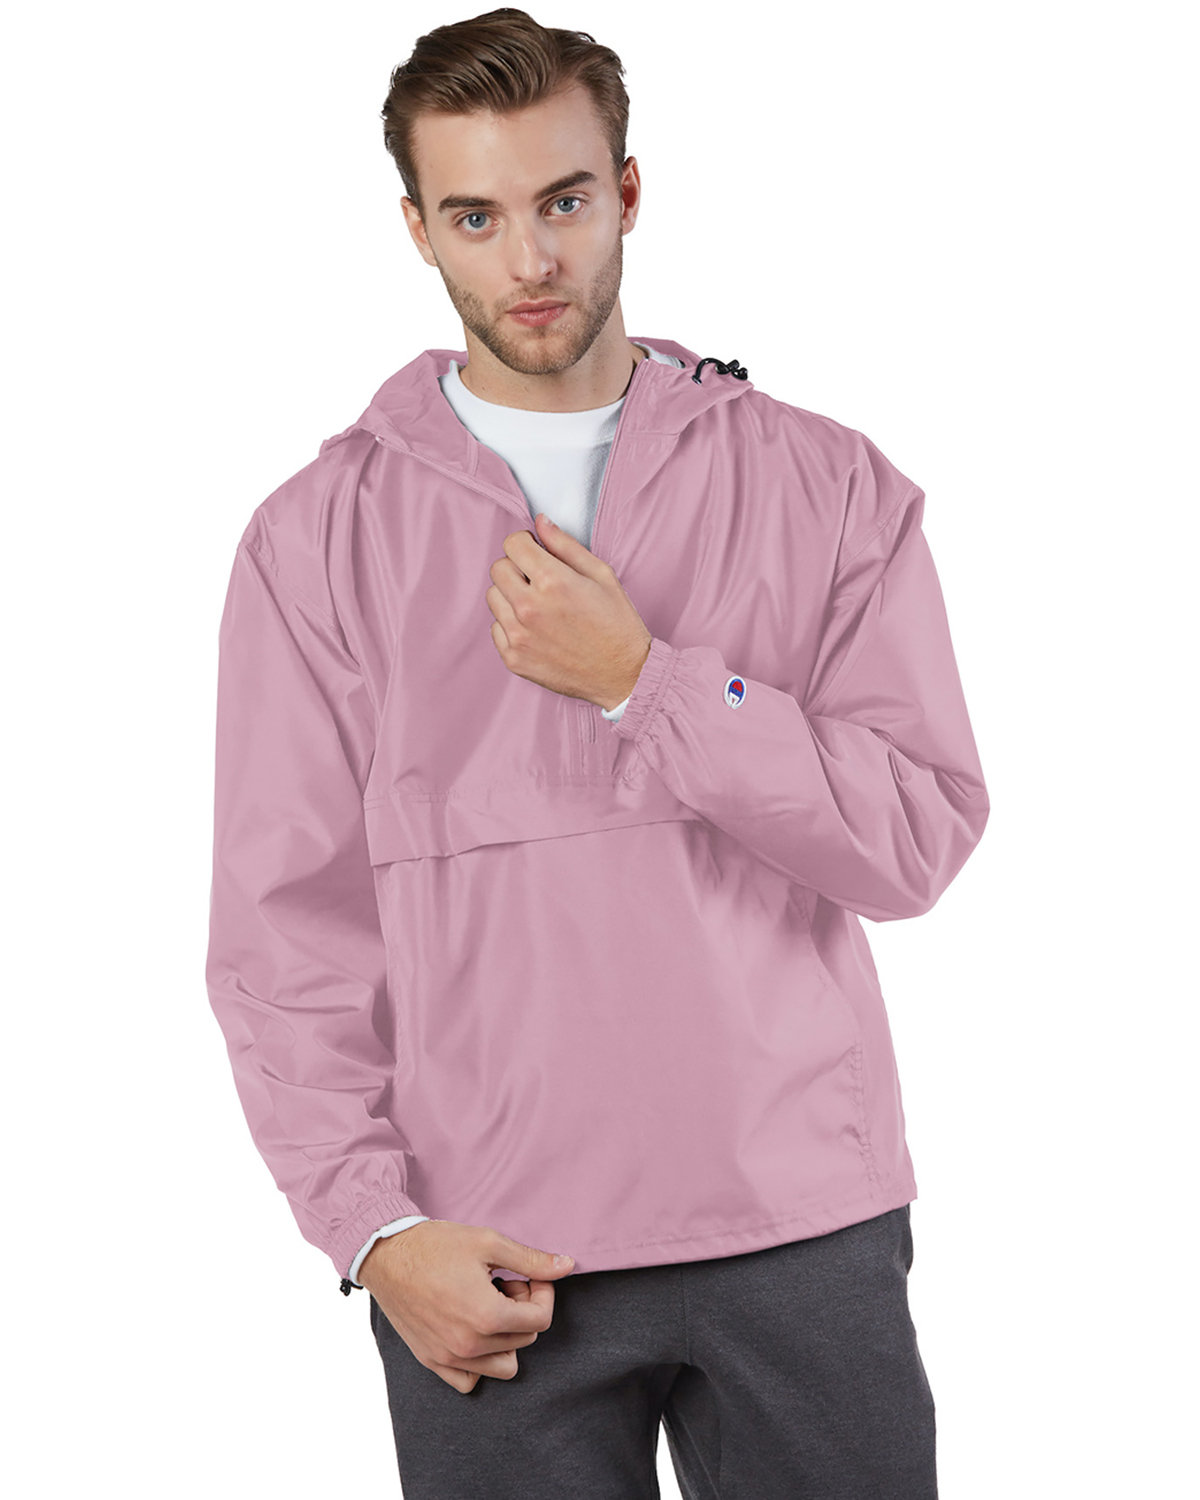 Champion Adult Packable Anorak 1/4 Zip Jacket PINK CANDY